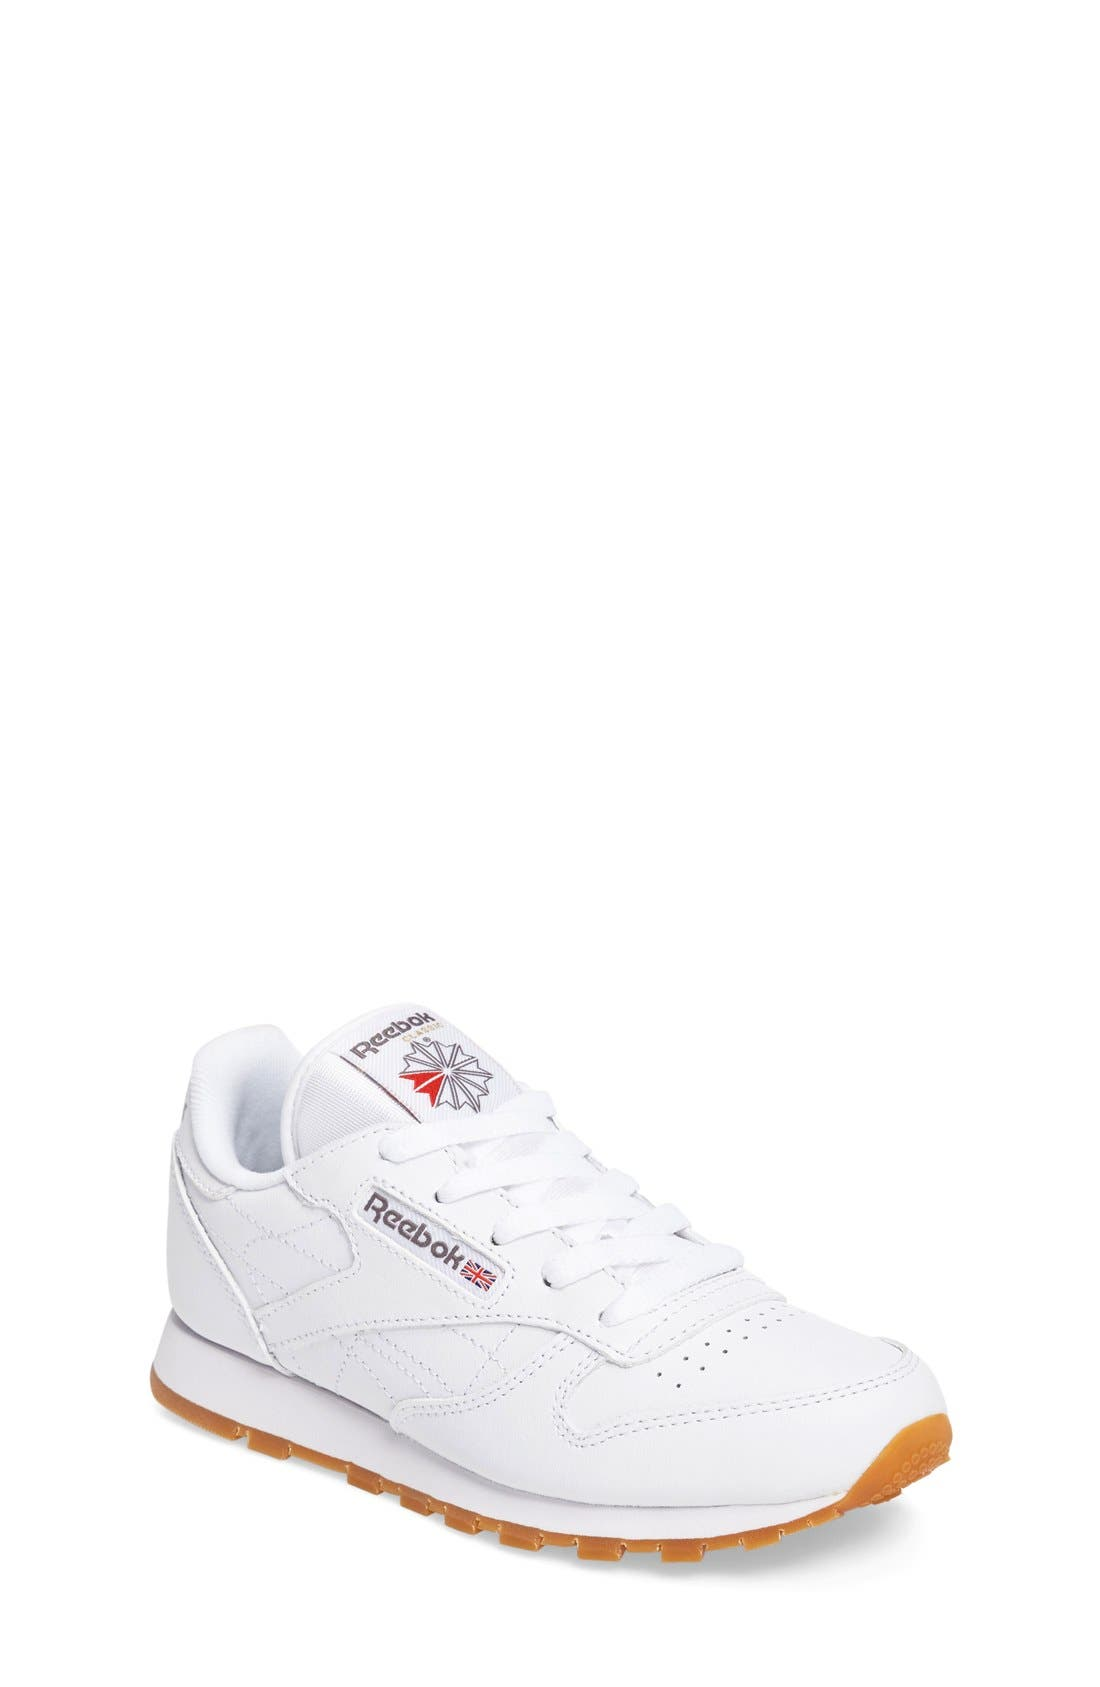 Classic Leather Sneaker,                         Main,                         color, White/ Gum